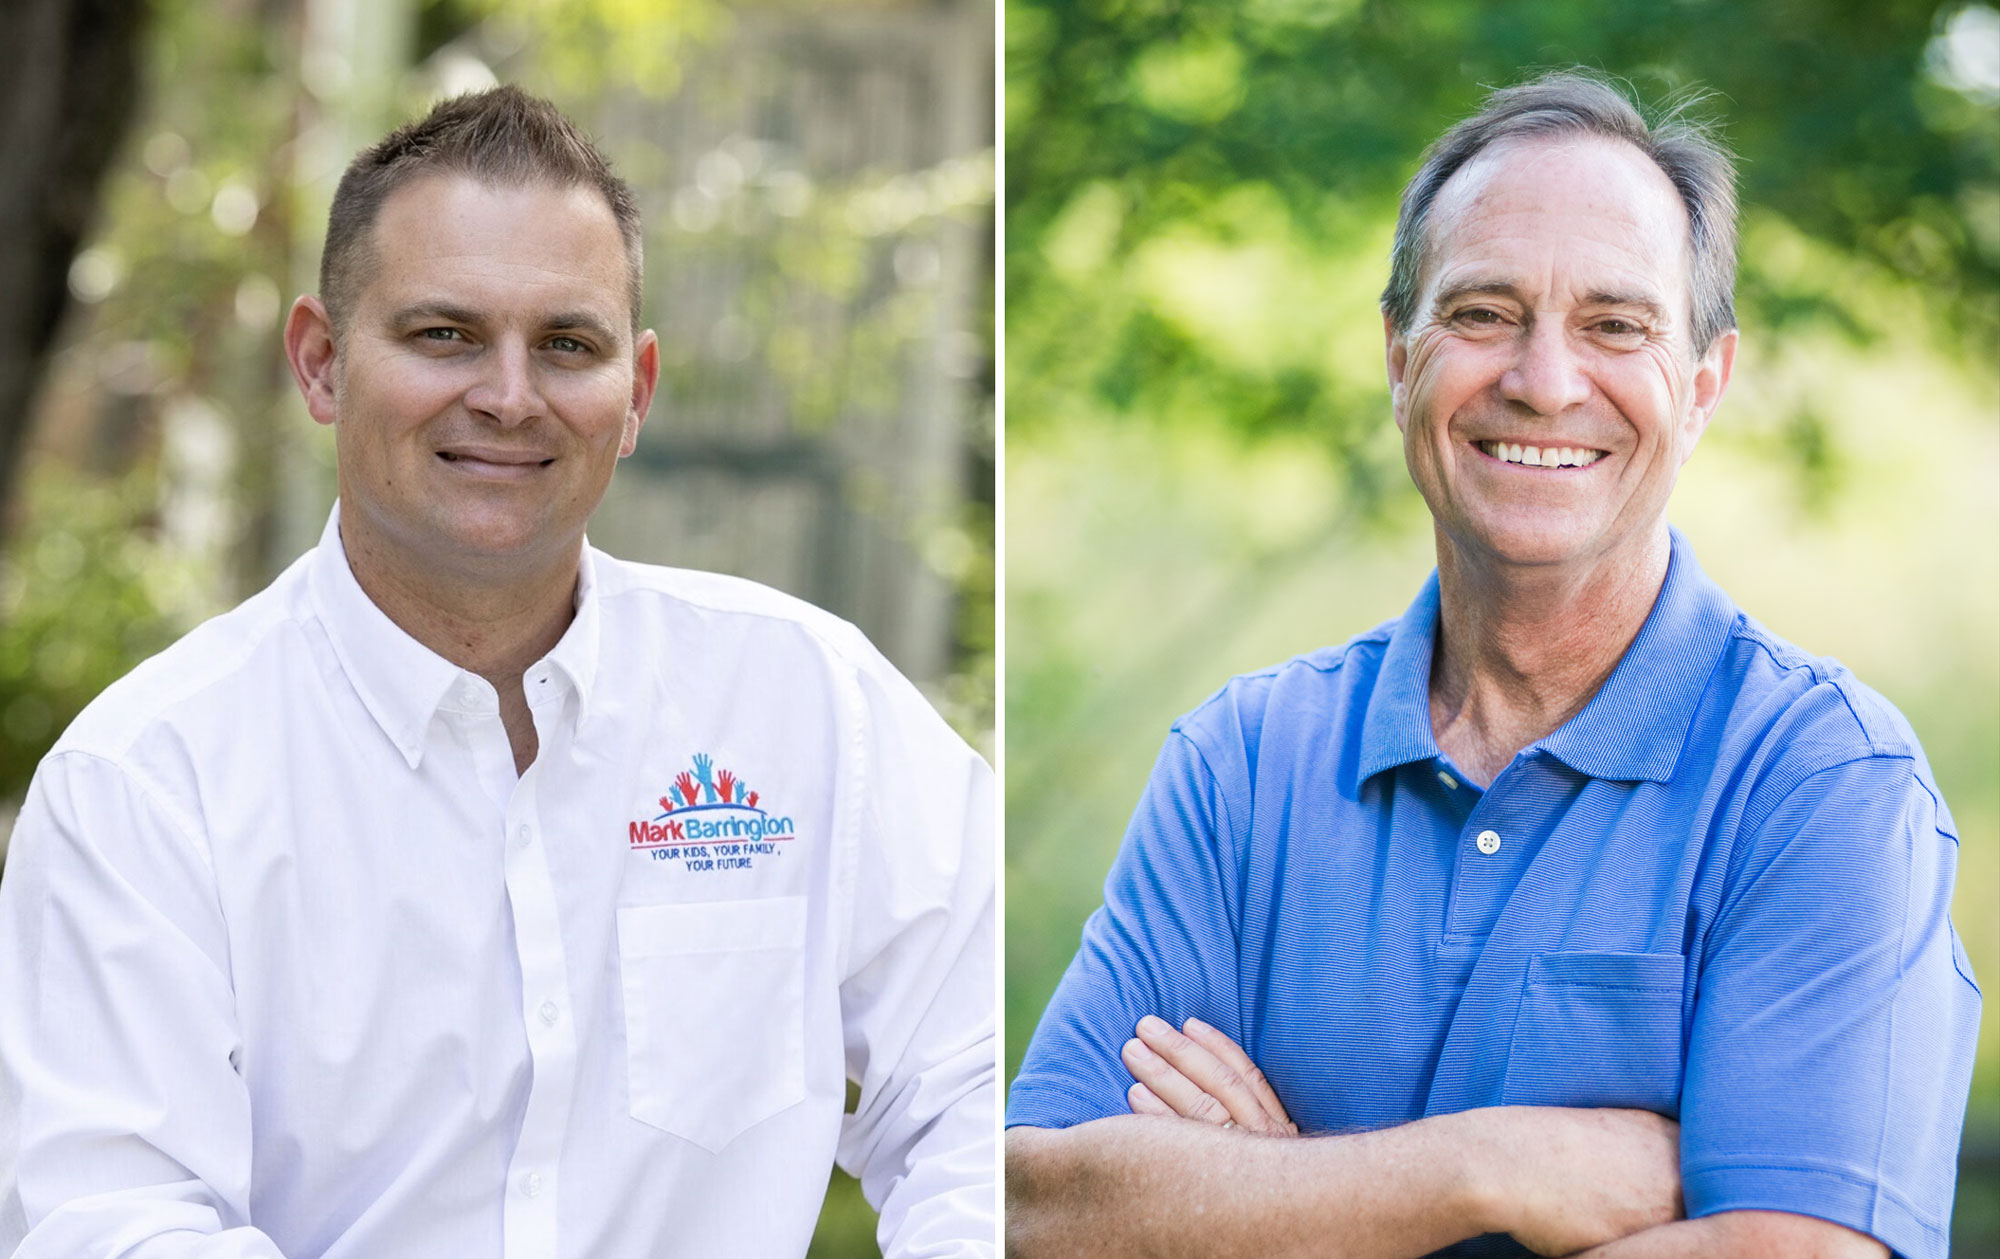 Photo: Election 2018 Mike Barrington & Ed Perlmutter